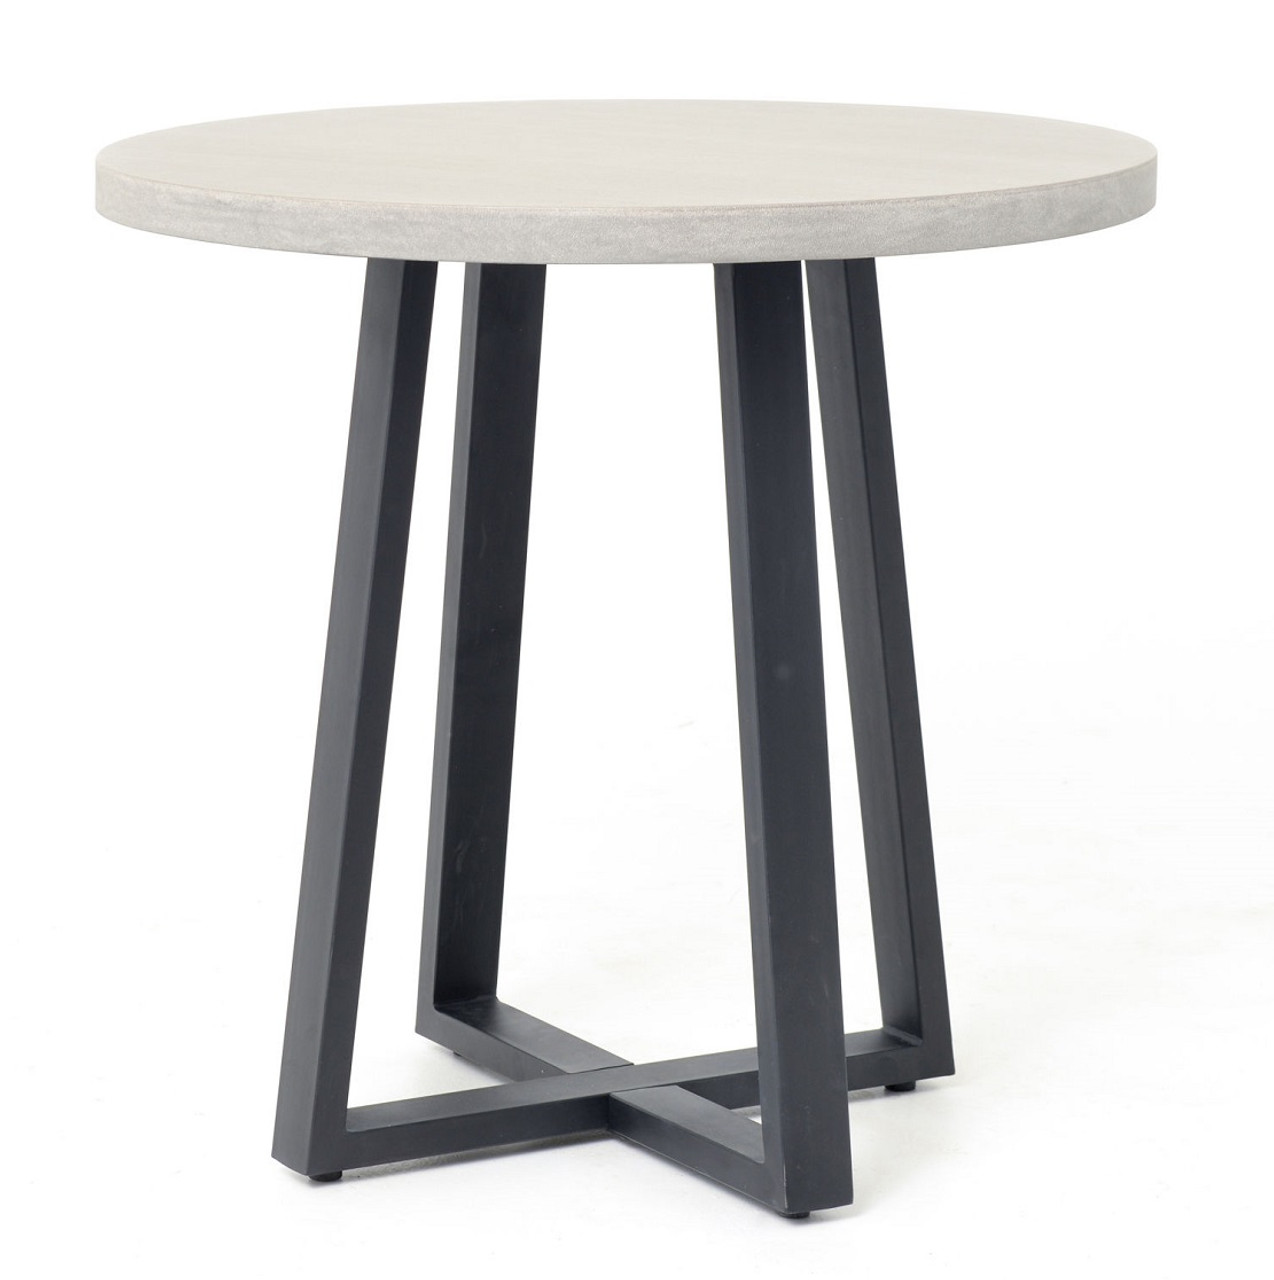 masonry concrete 32 bistro round dining table zin home. Black Bedroom Furniture Sets. Home Design Ideas